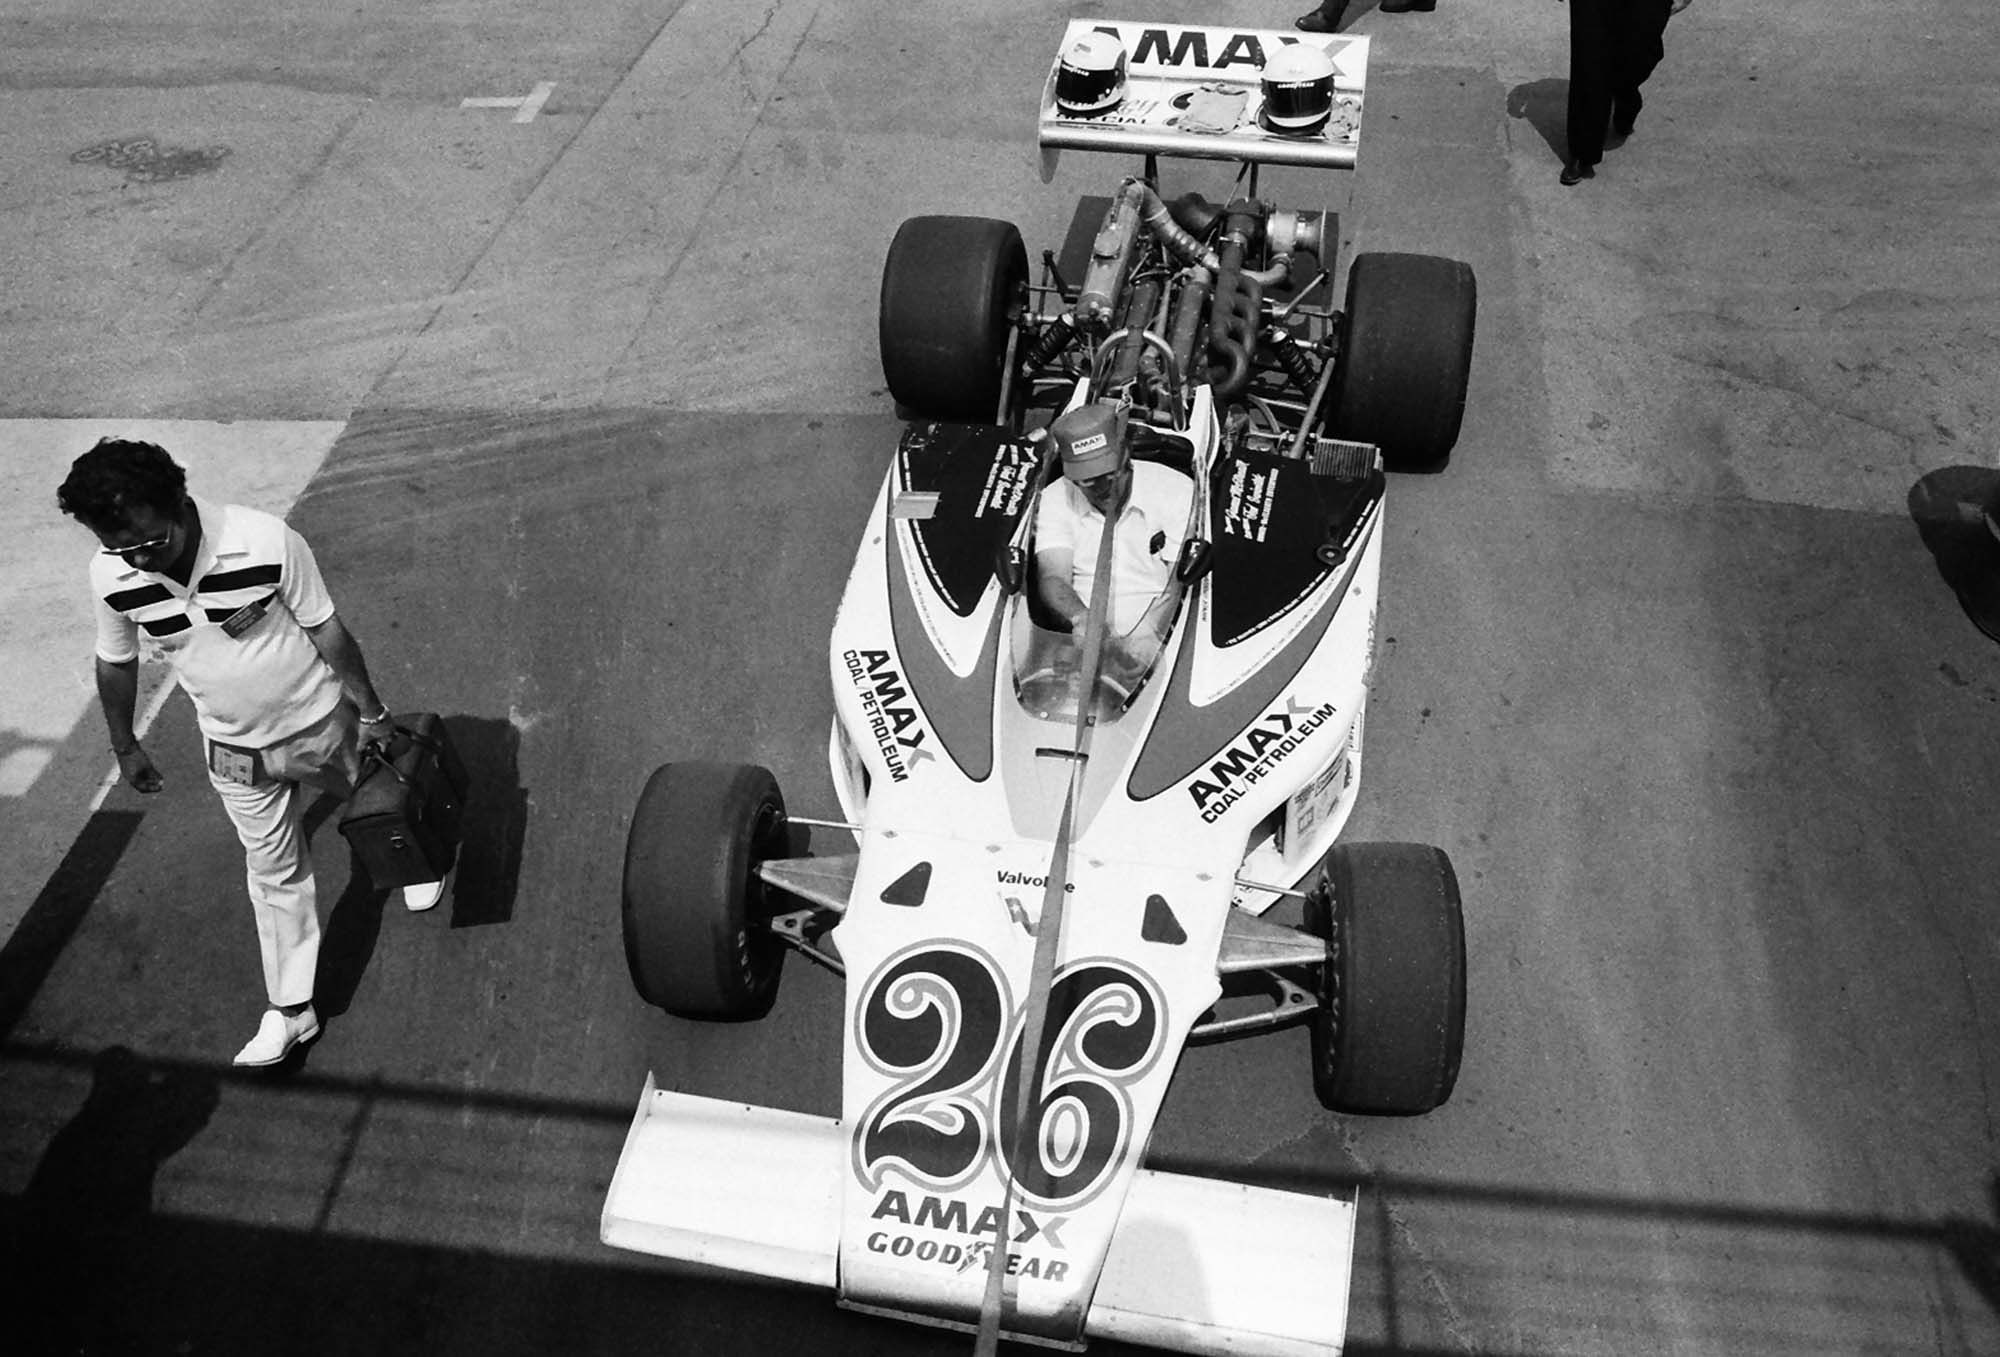 Ontario Motor Speedway 1977 James McElreath Car 26 from above - Dan Carroll